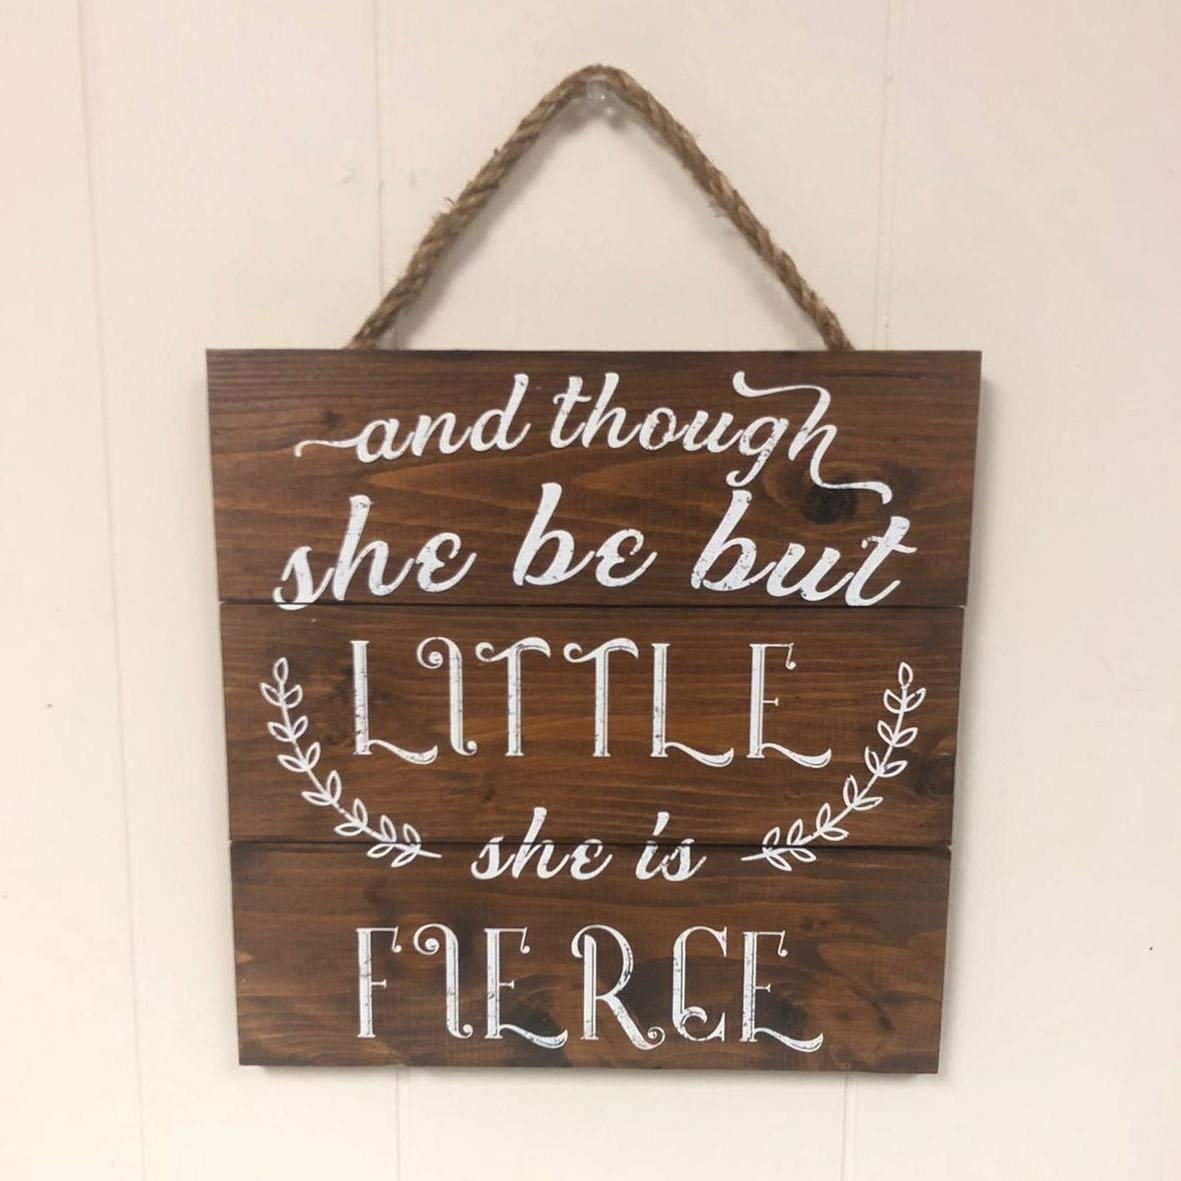 Artblox Rustic Nursery Room Sign And Though She Be but Little She is Fierce Quotes, Hearts & Flowers Ornaments Artwork, Barn Wood Pallet Farmhouse Wooden Plaque Art Print, 10.5x10.5 - White